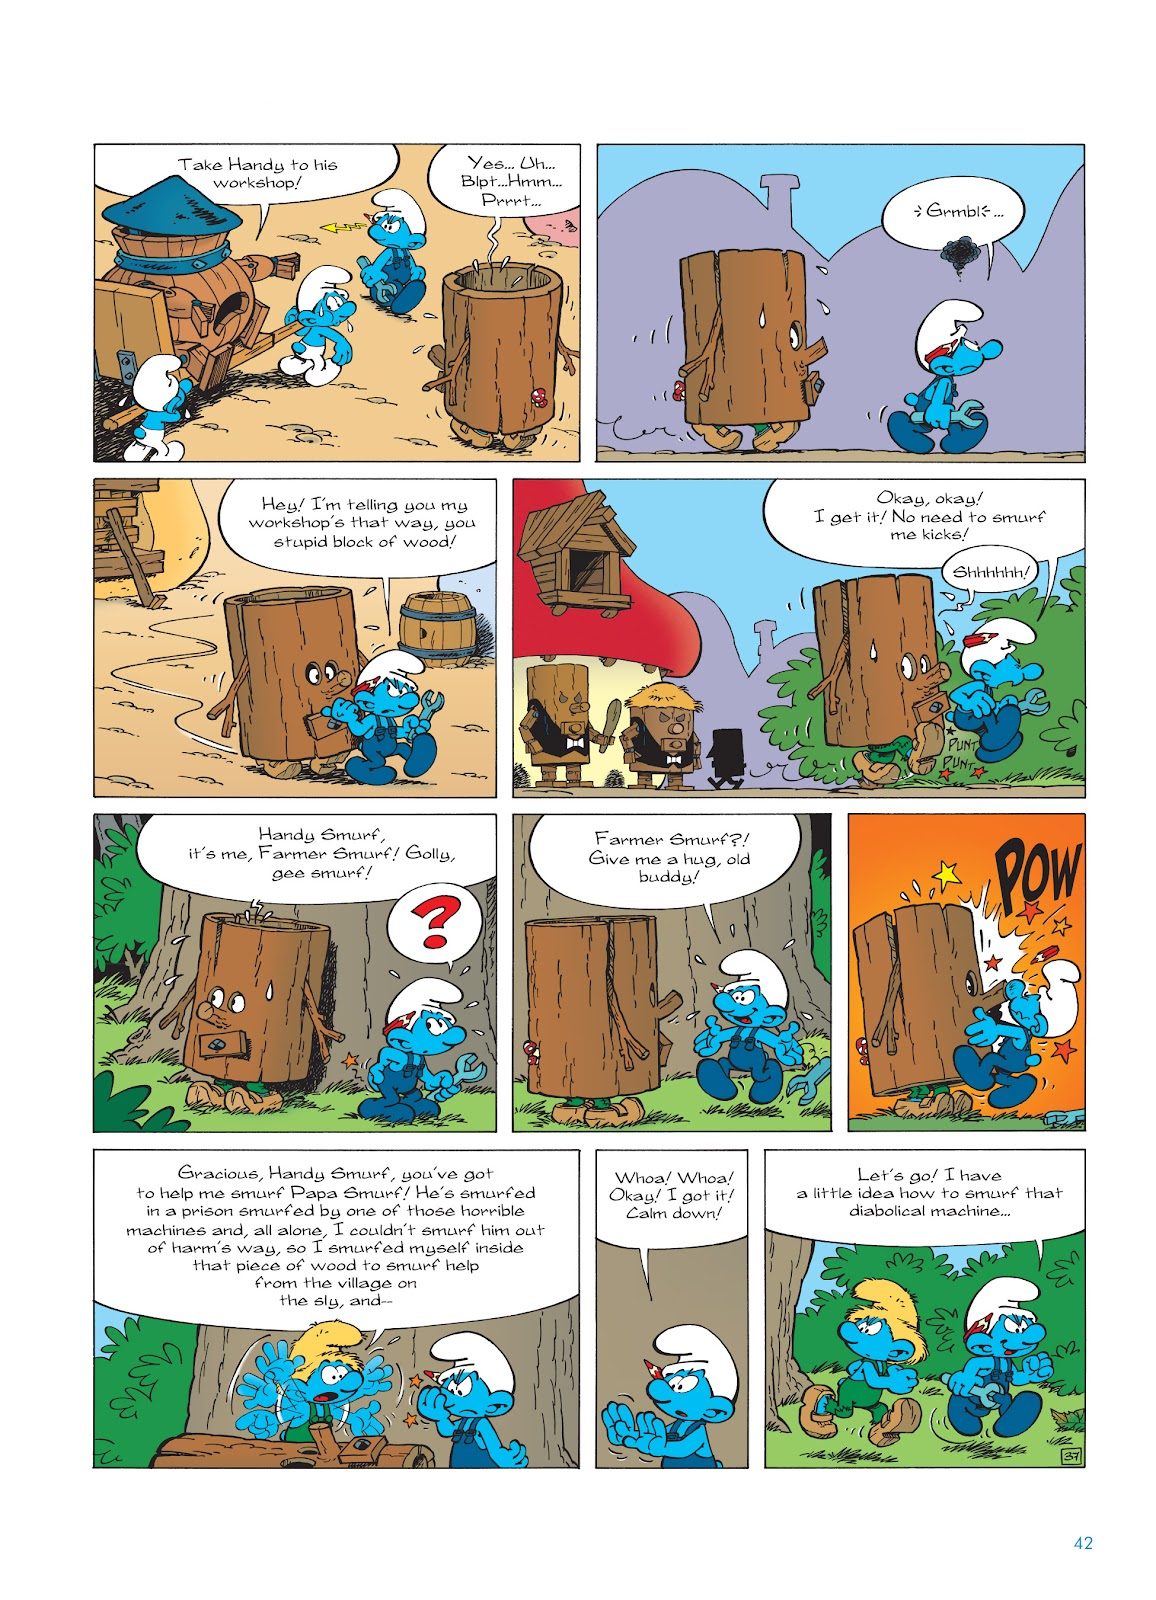 Read online The Smurfs comic -  Issue #23 - 42